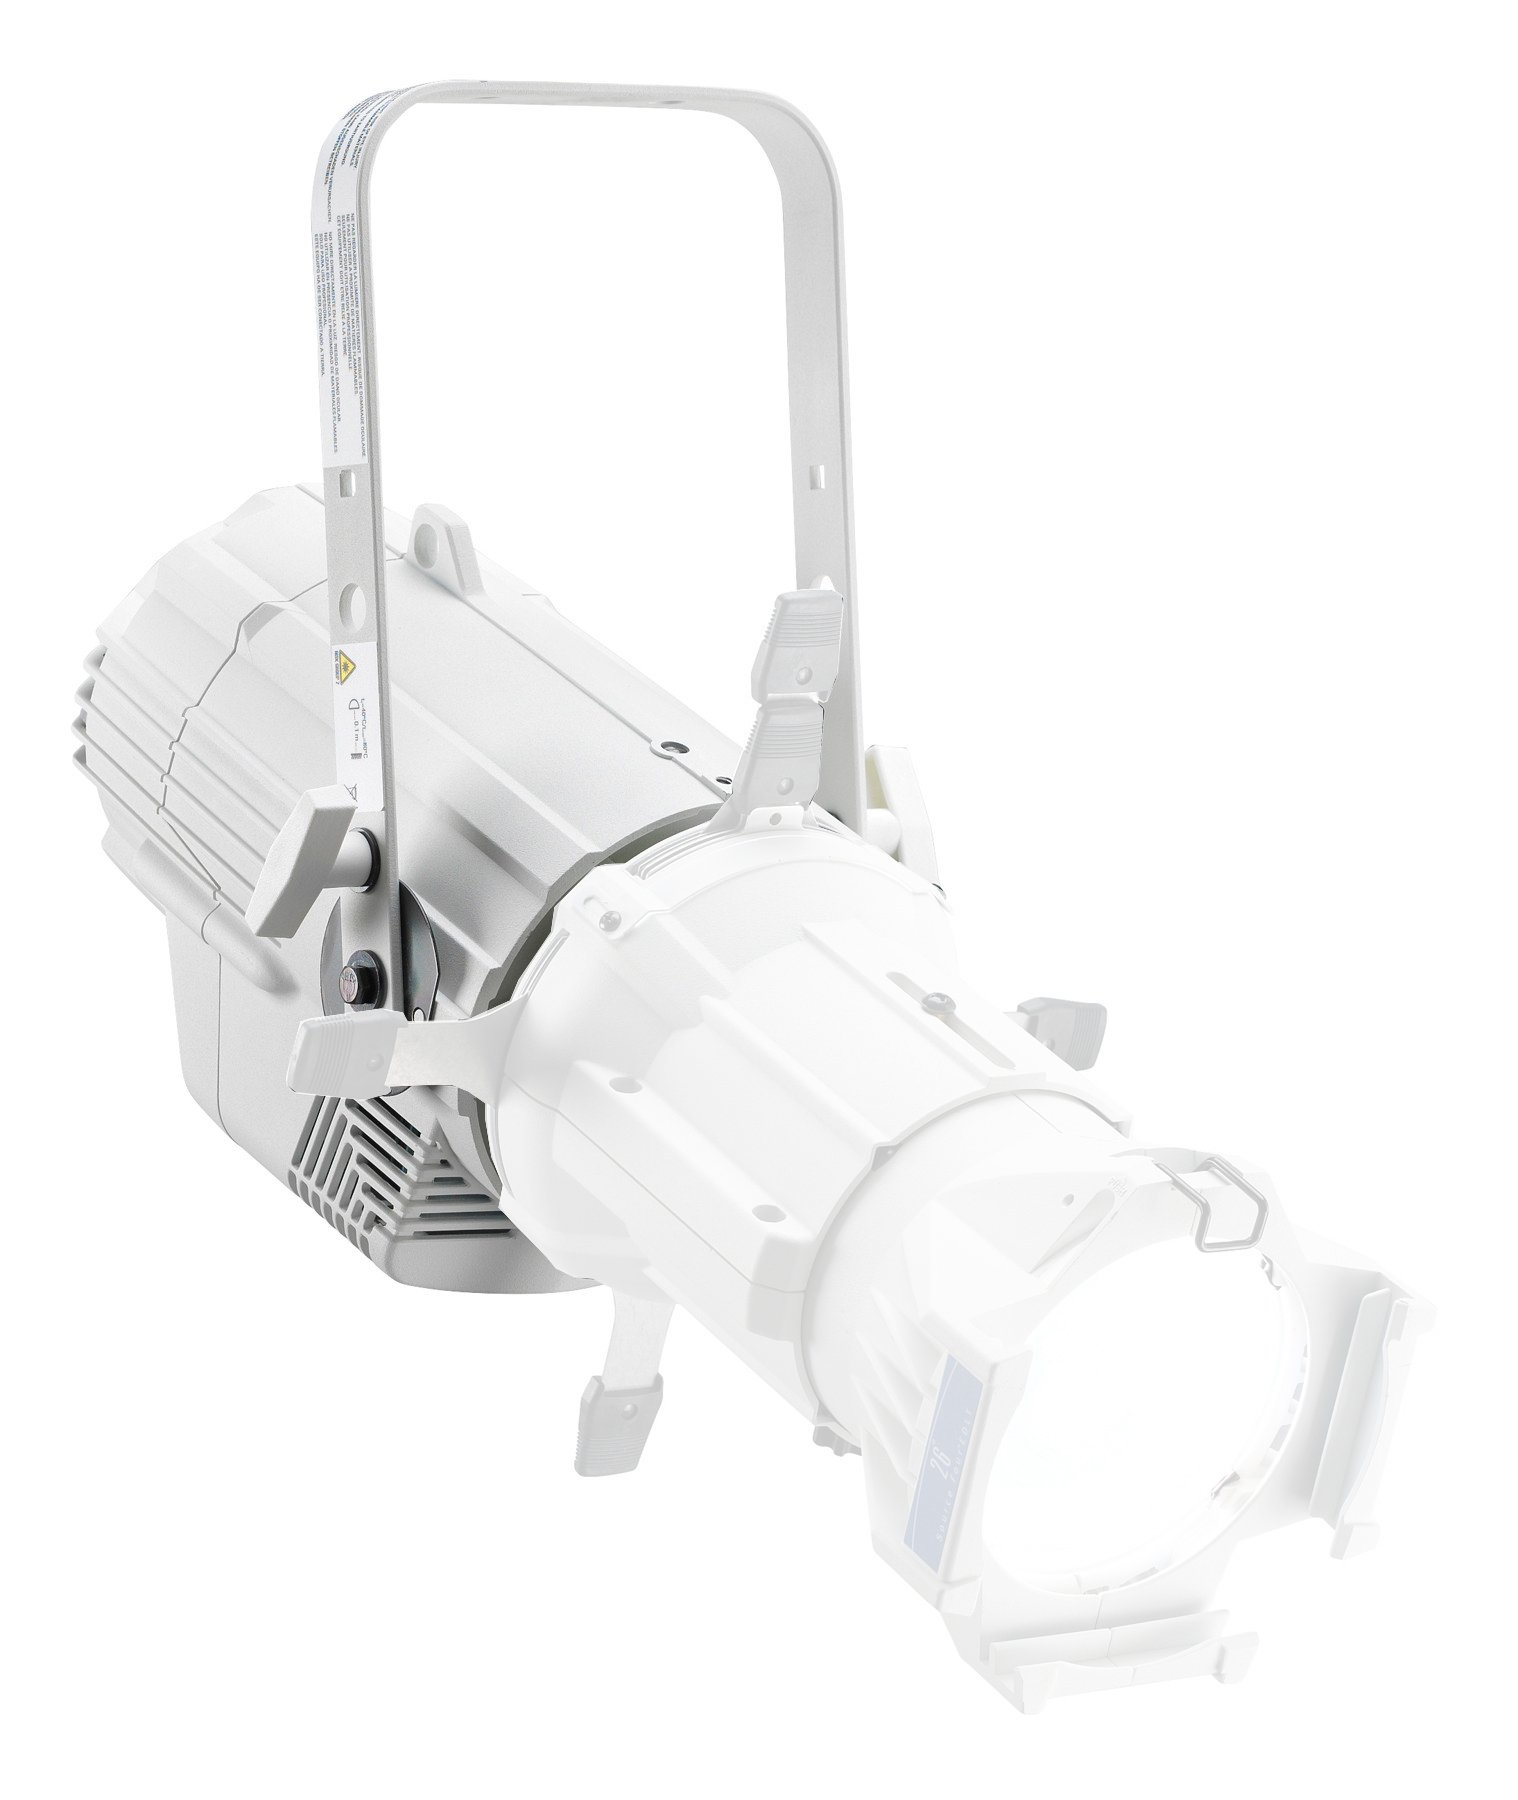 Source Four LED Daylight in White with Engine Body Only and Edison Connector